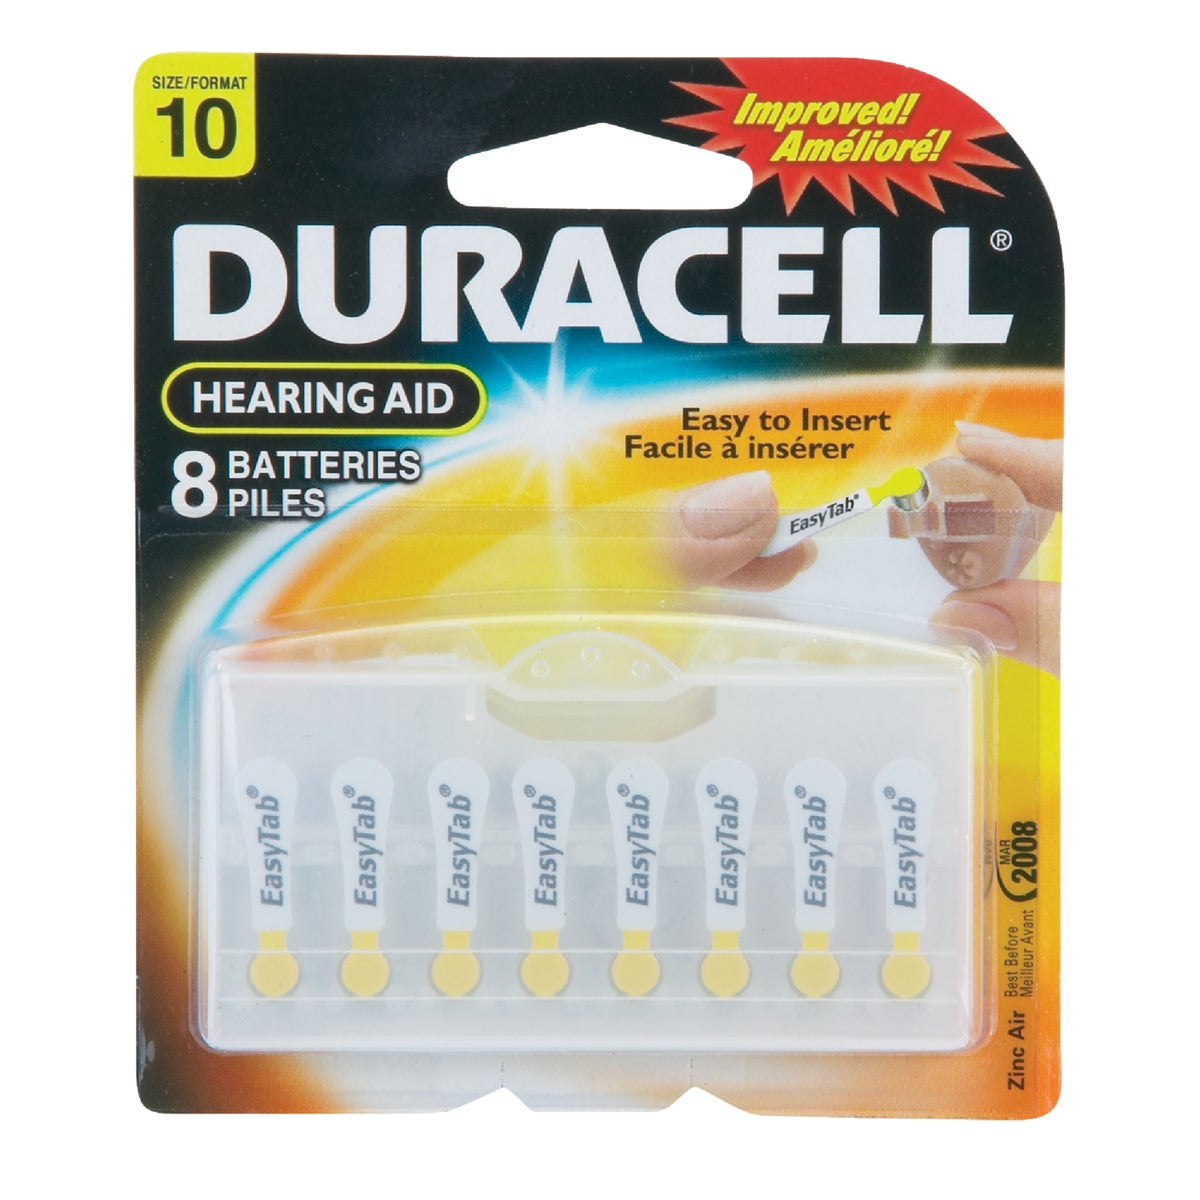 DA10 1.4V HR AID BATTERY - 90387 by P & G  Duracell